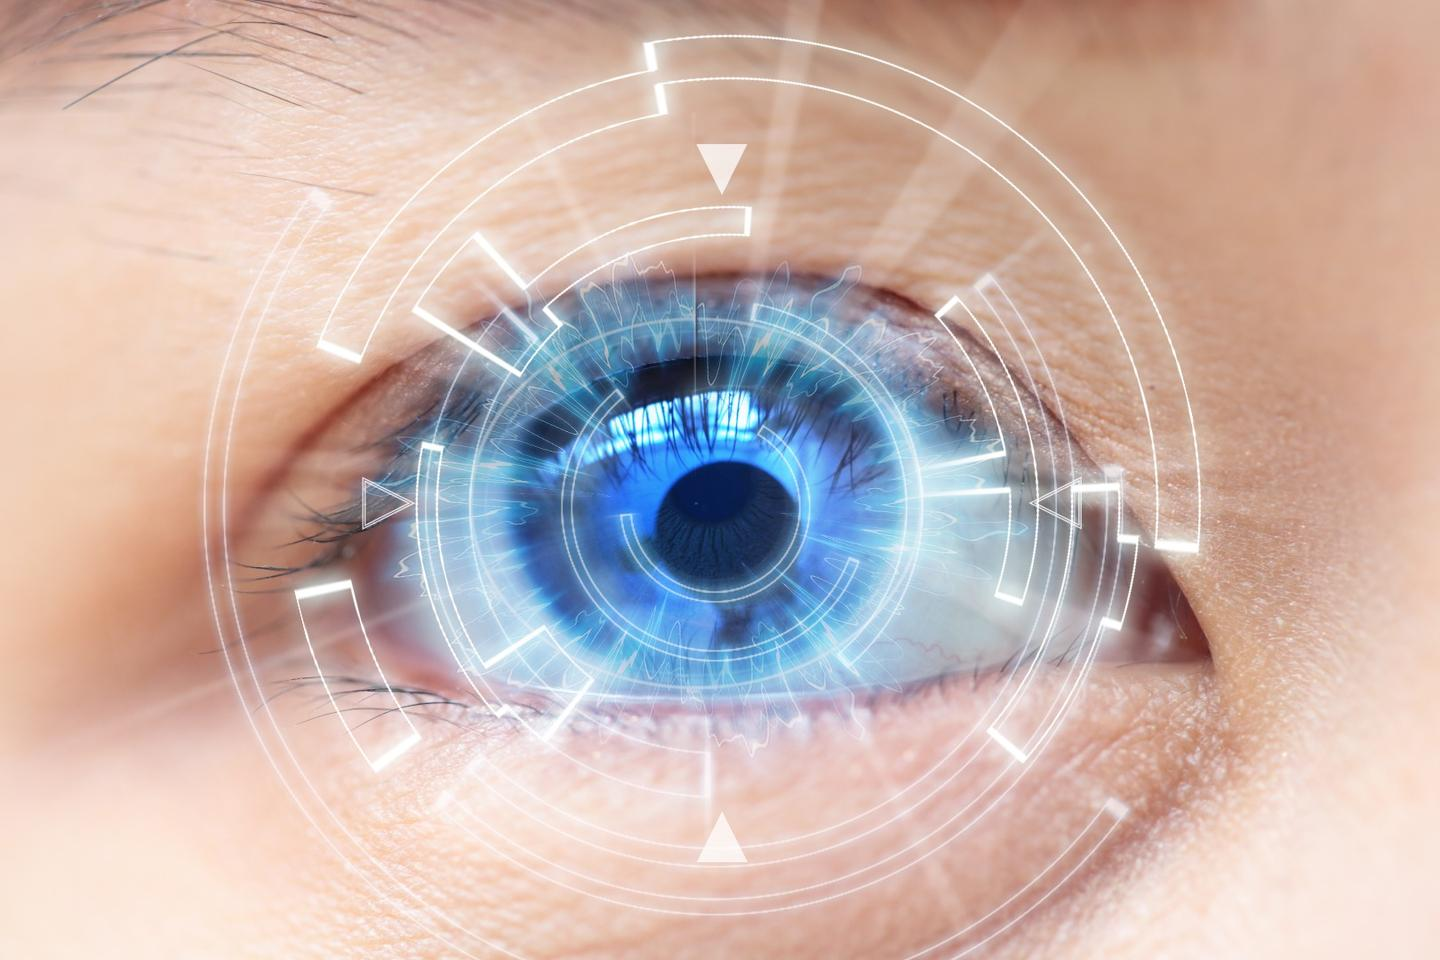 Sony has filed a patent for a contact lens that captures photos and videos with a blink of the eye